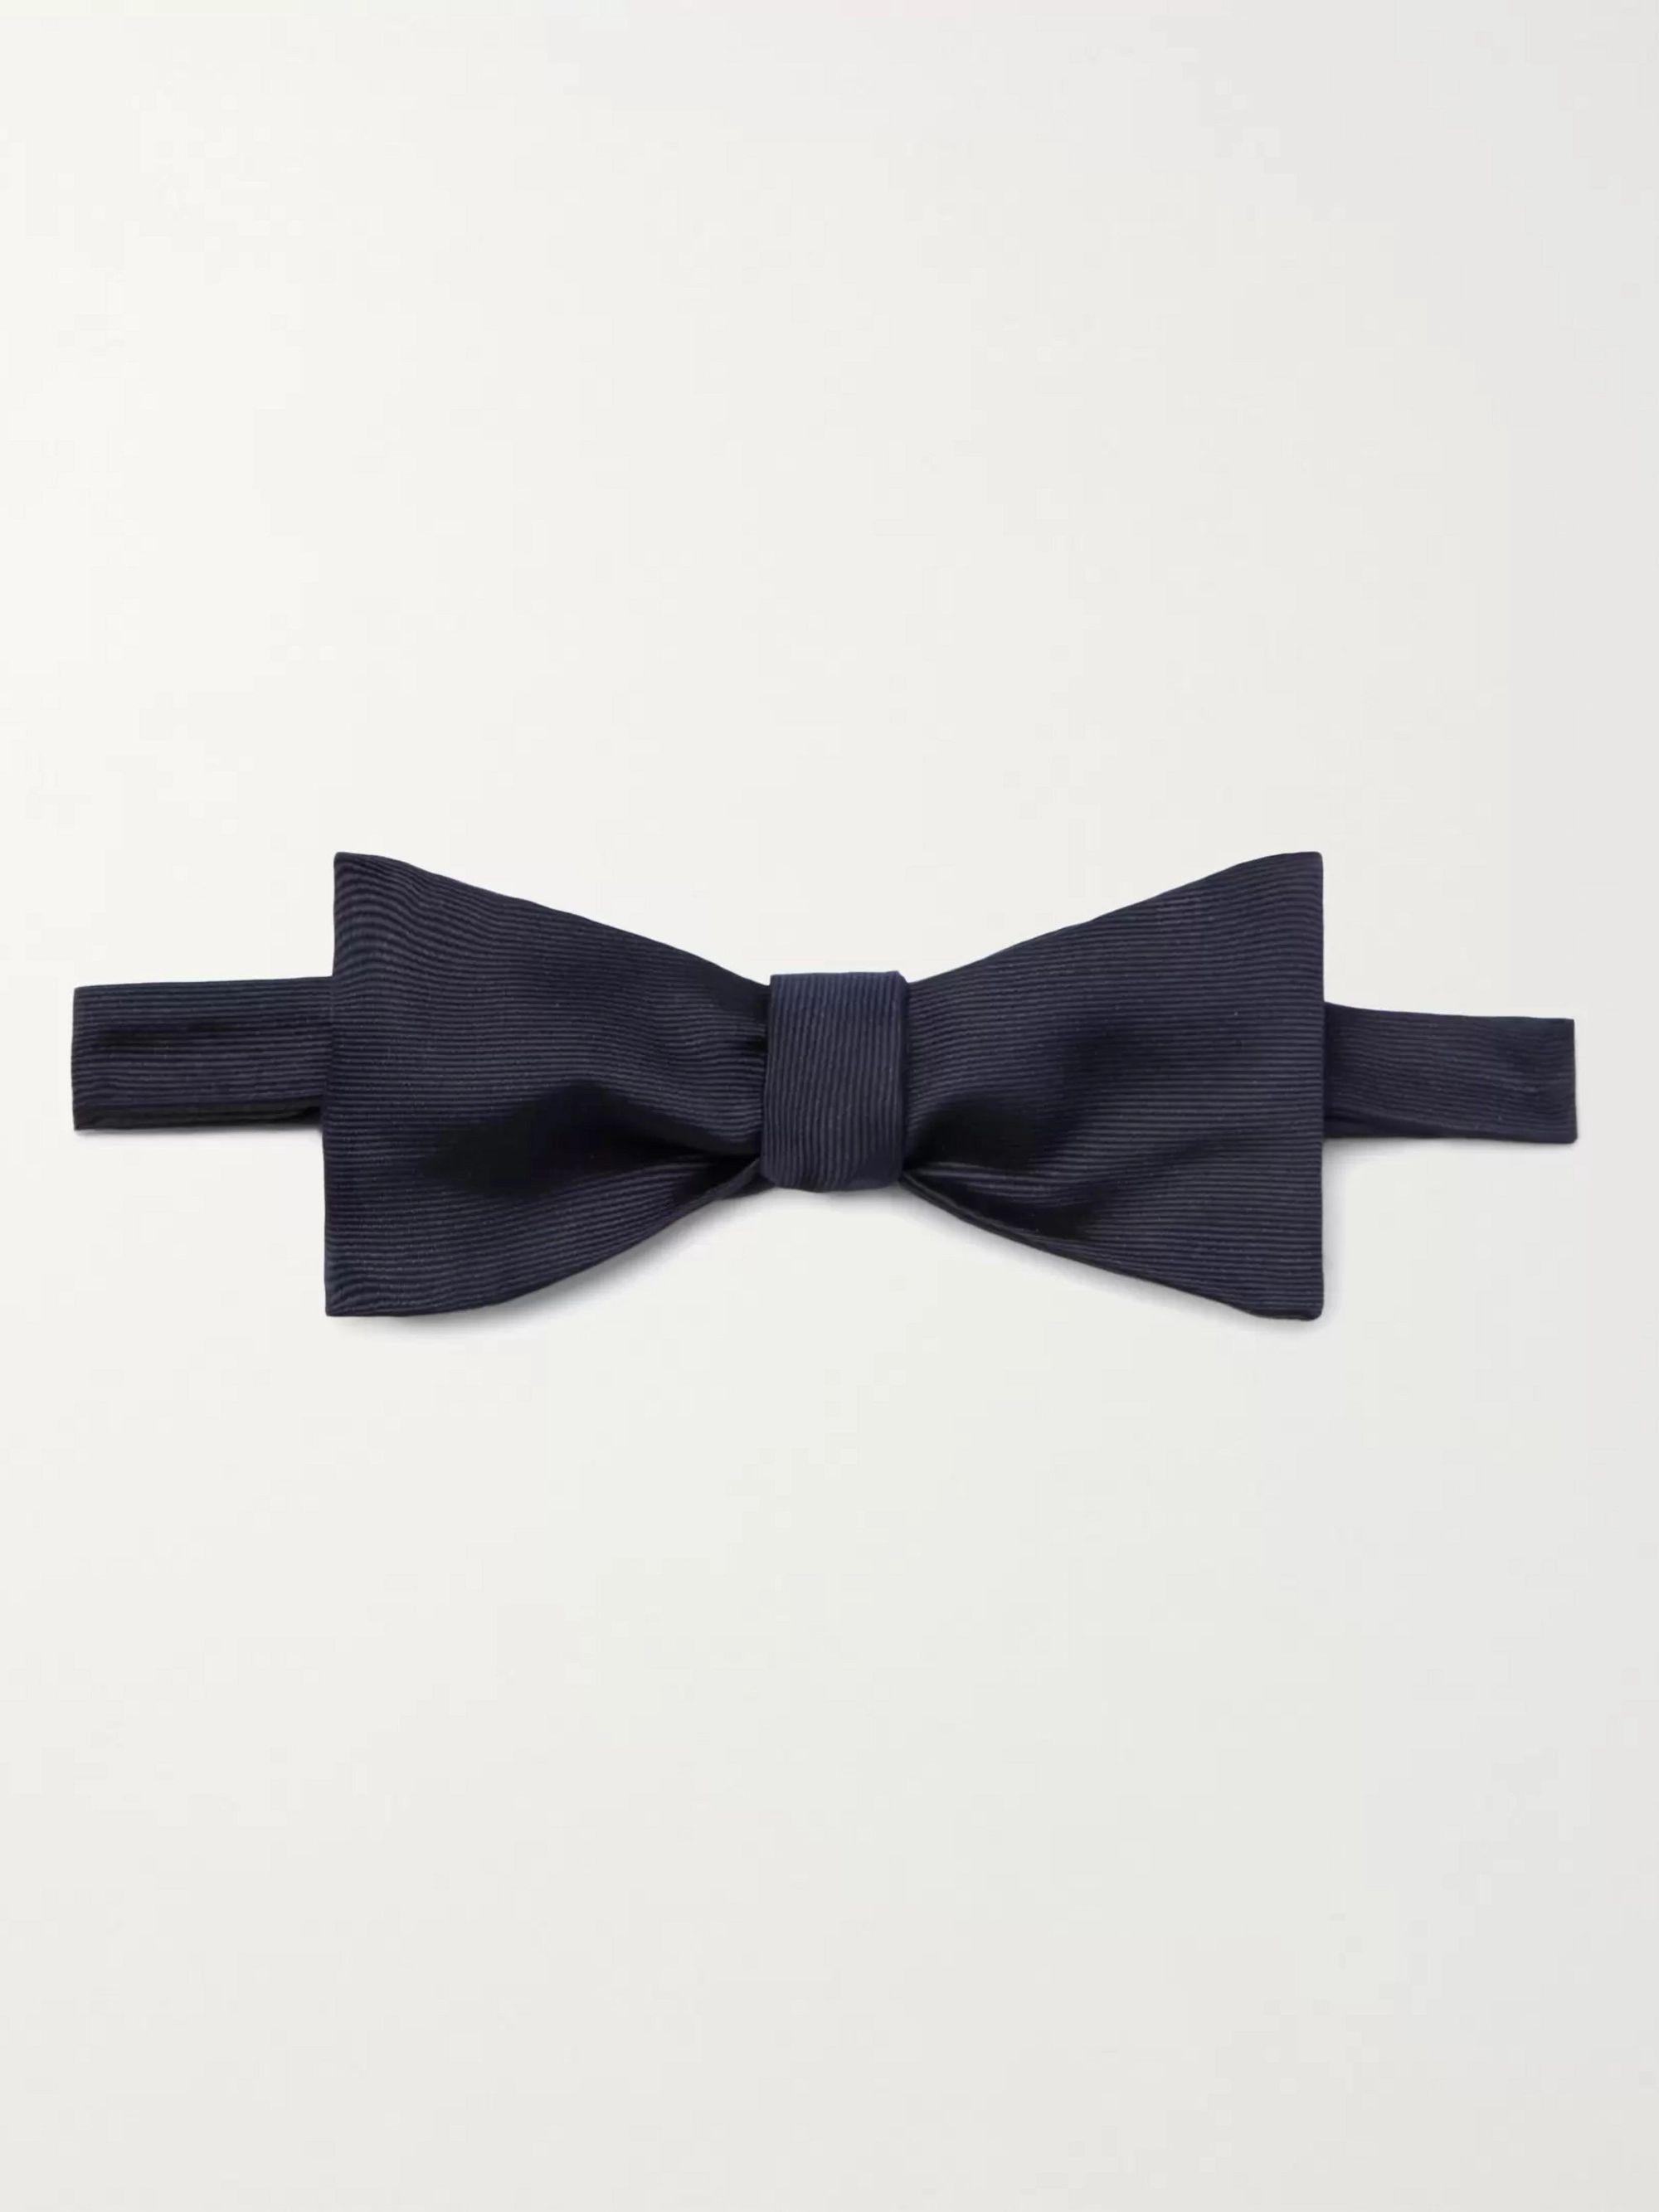 폴 스미스 Paul Smith Self-Tie Silk-Grosgrain Bow Tie,Midnight blue